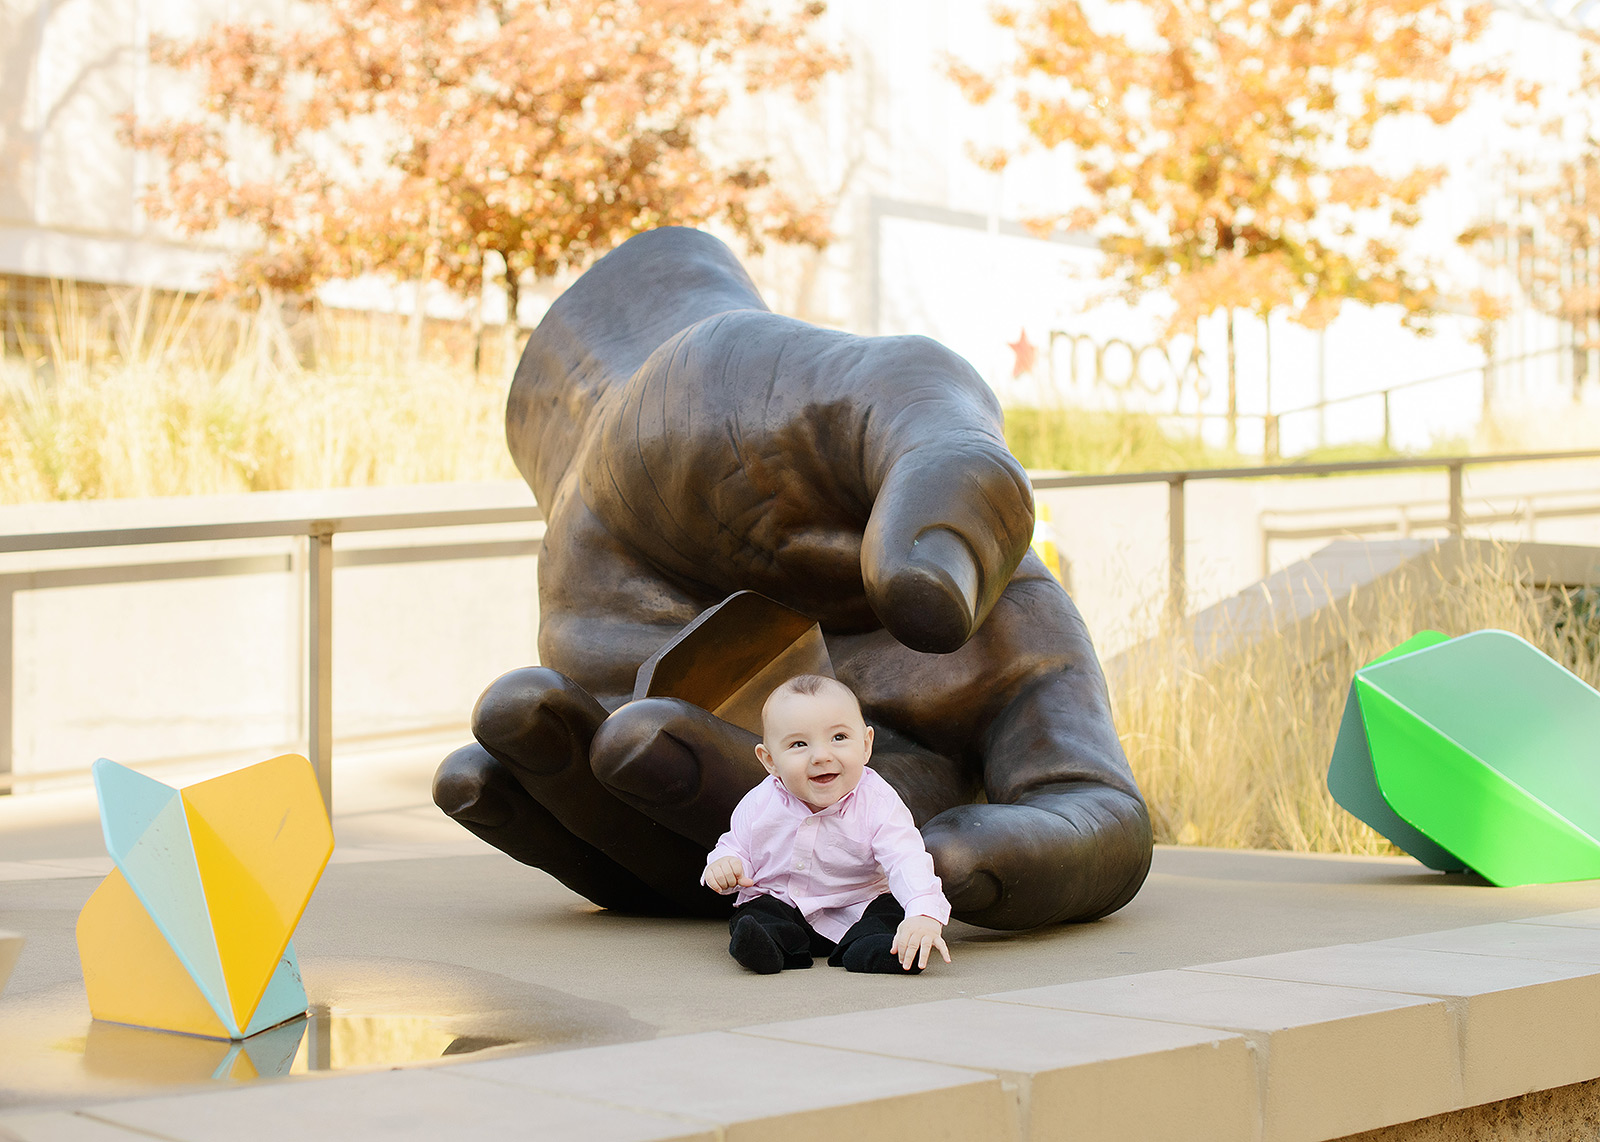 Baby Boy Laughing by Gale Hart Hand Sculpture at Golden 1 Center